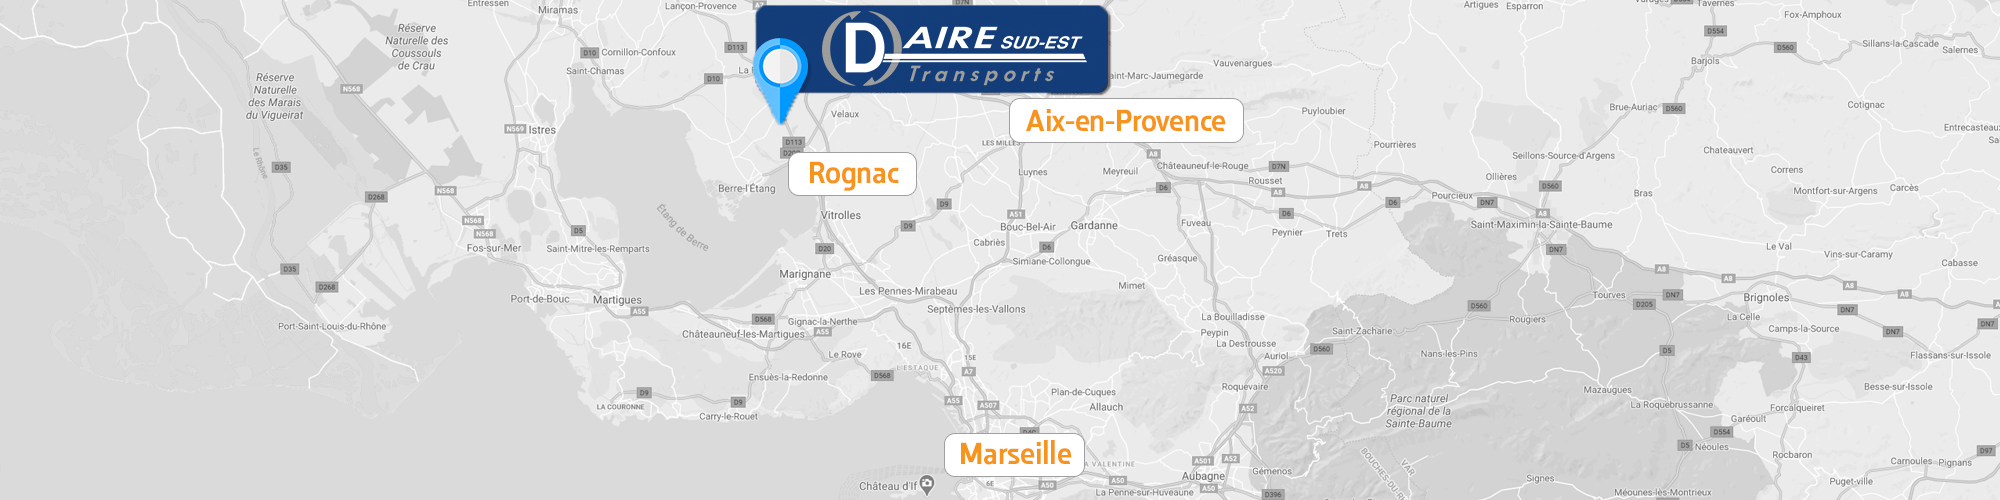 tcda-page-contact-map-transports-daire-sud-est